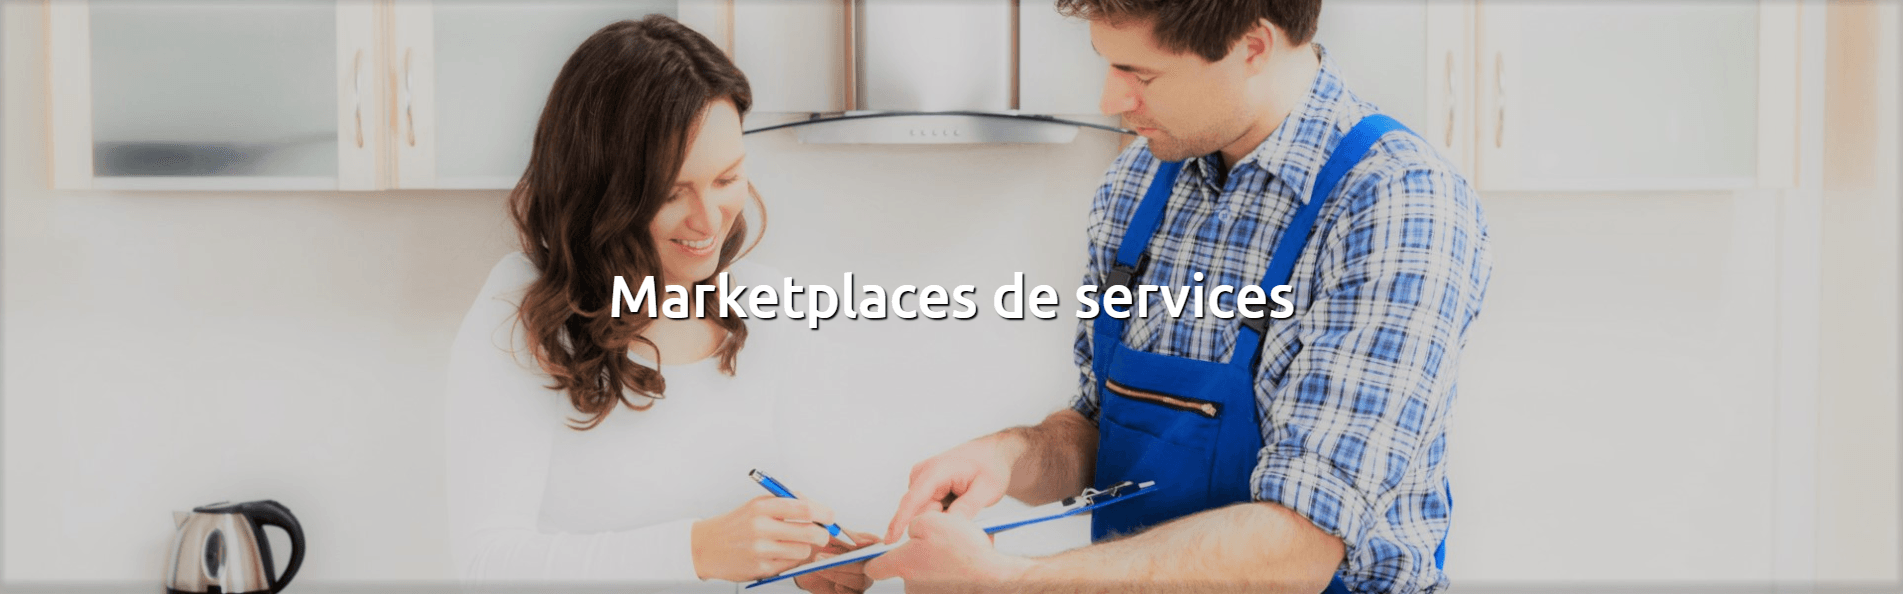 Marketplace de services